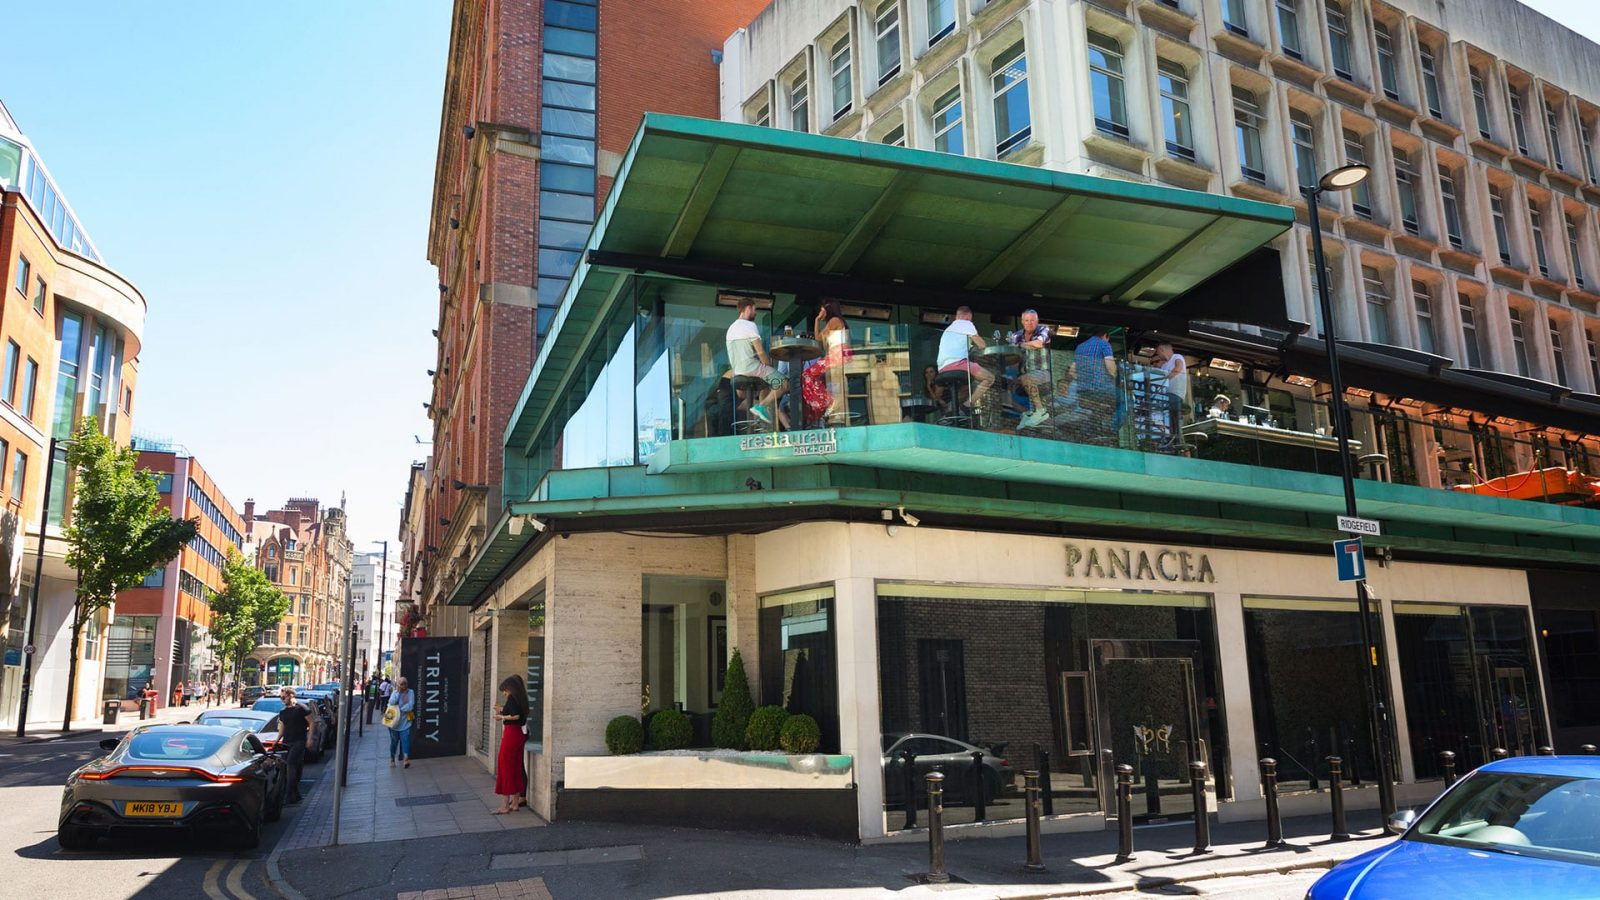 The Restaurant Bar and Grill is closing for good in Manchester, The Manc